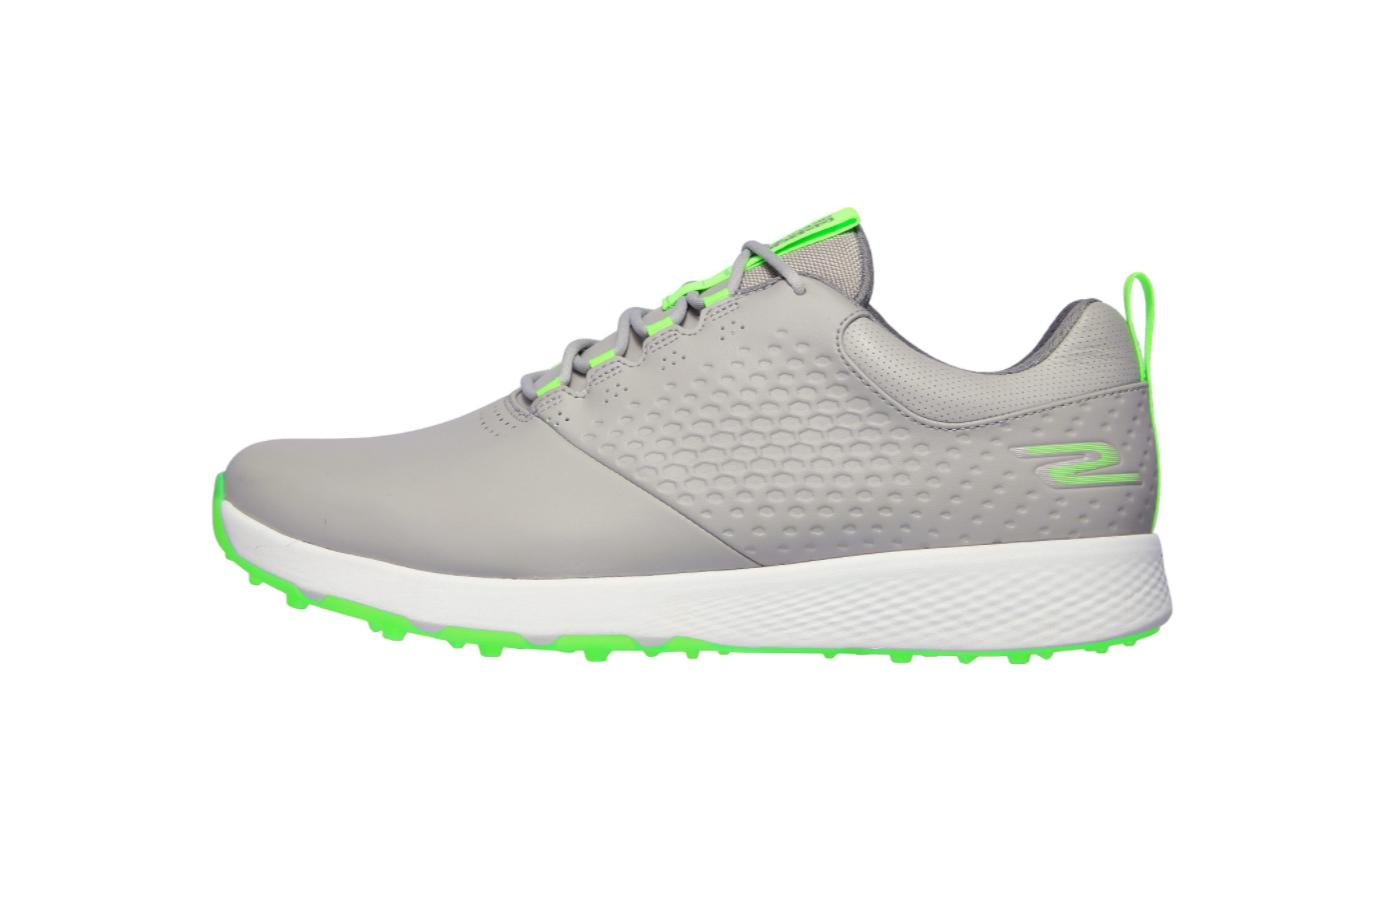 Skechers Go Golf V.4 Golf 54552 - Choose Your Sz